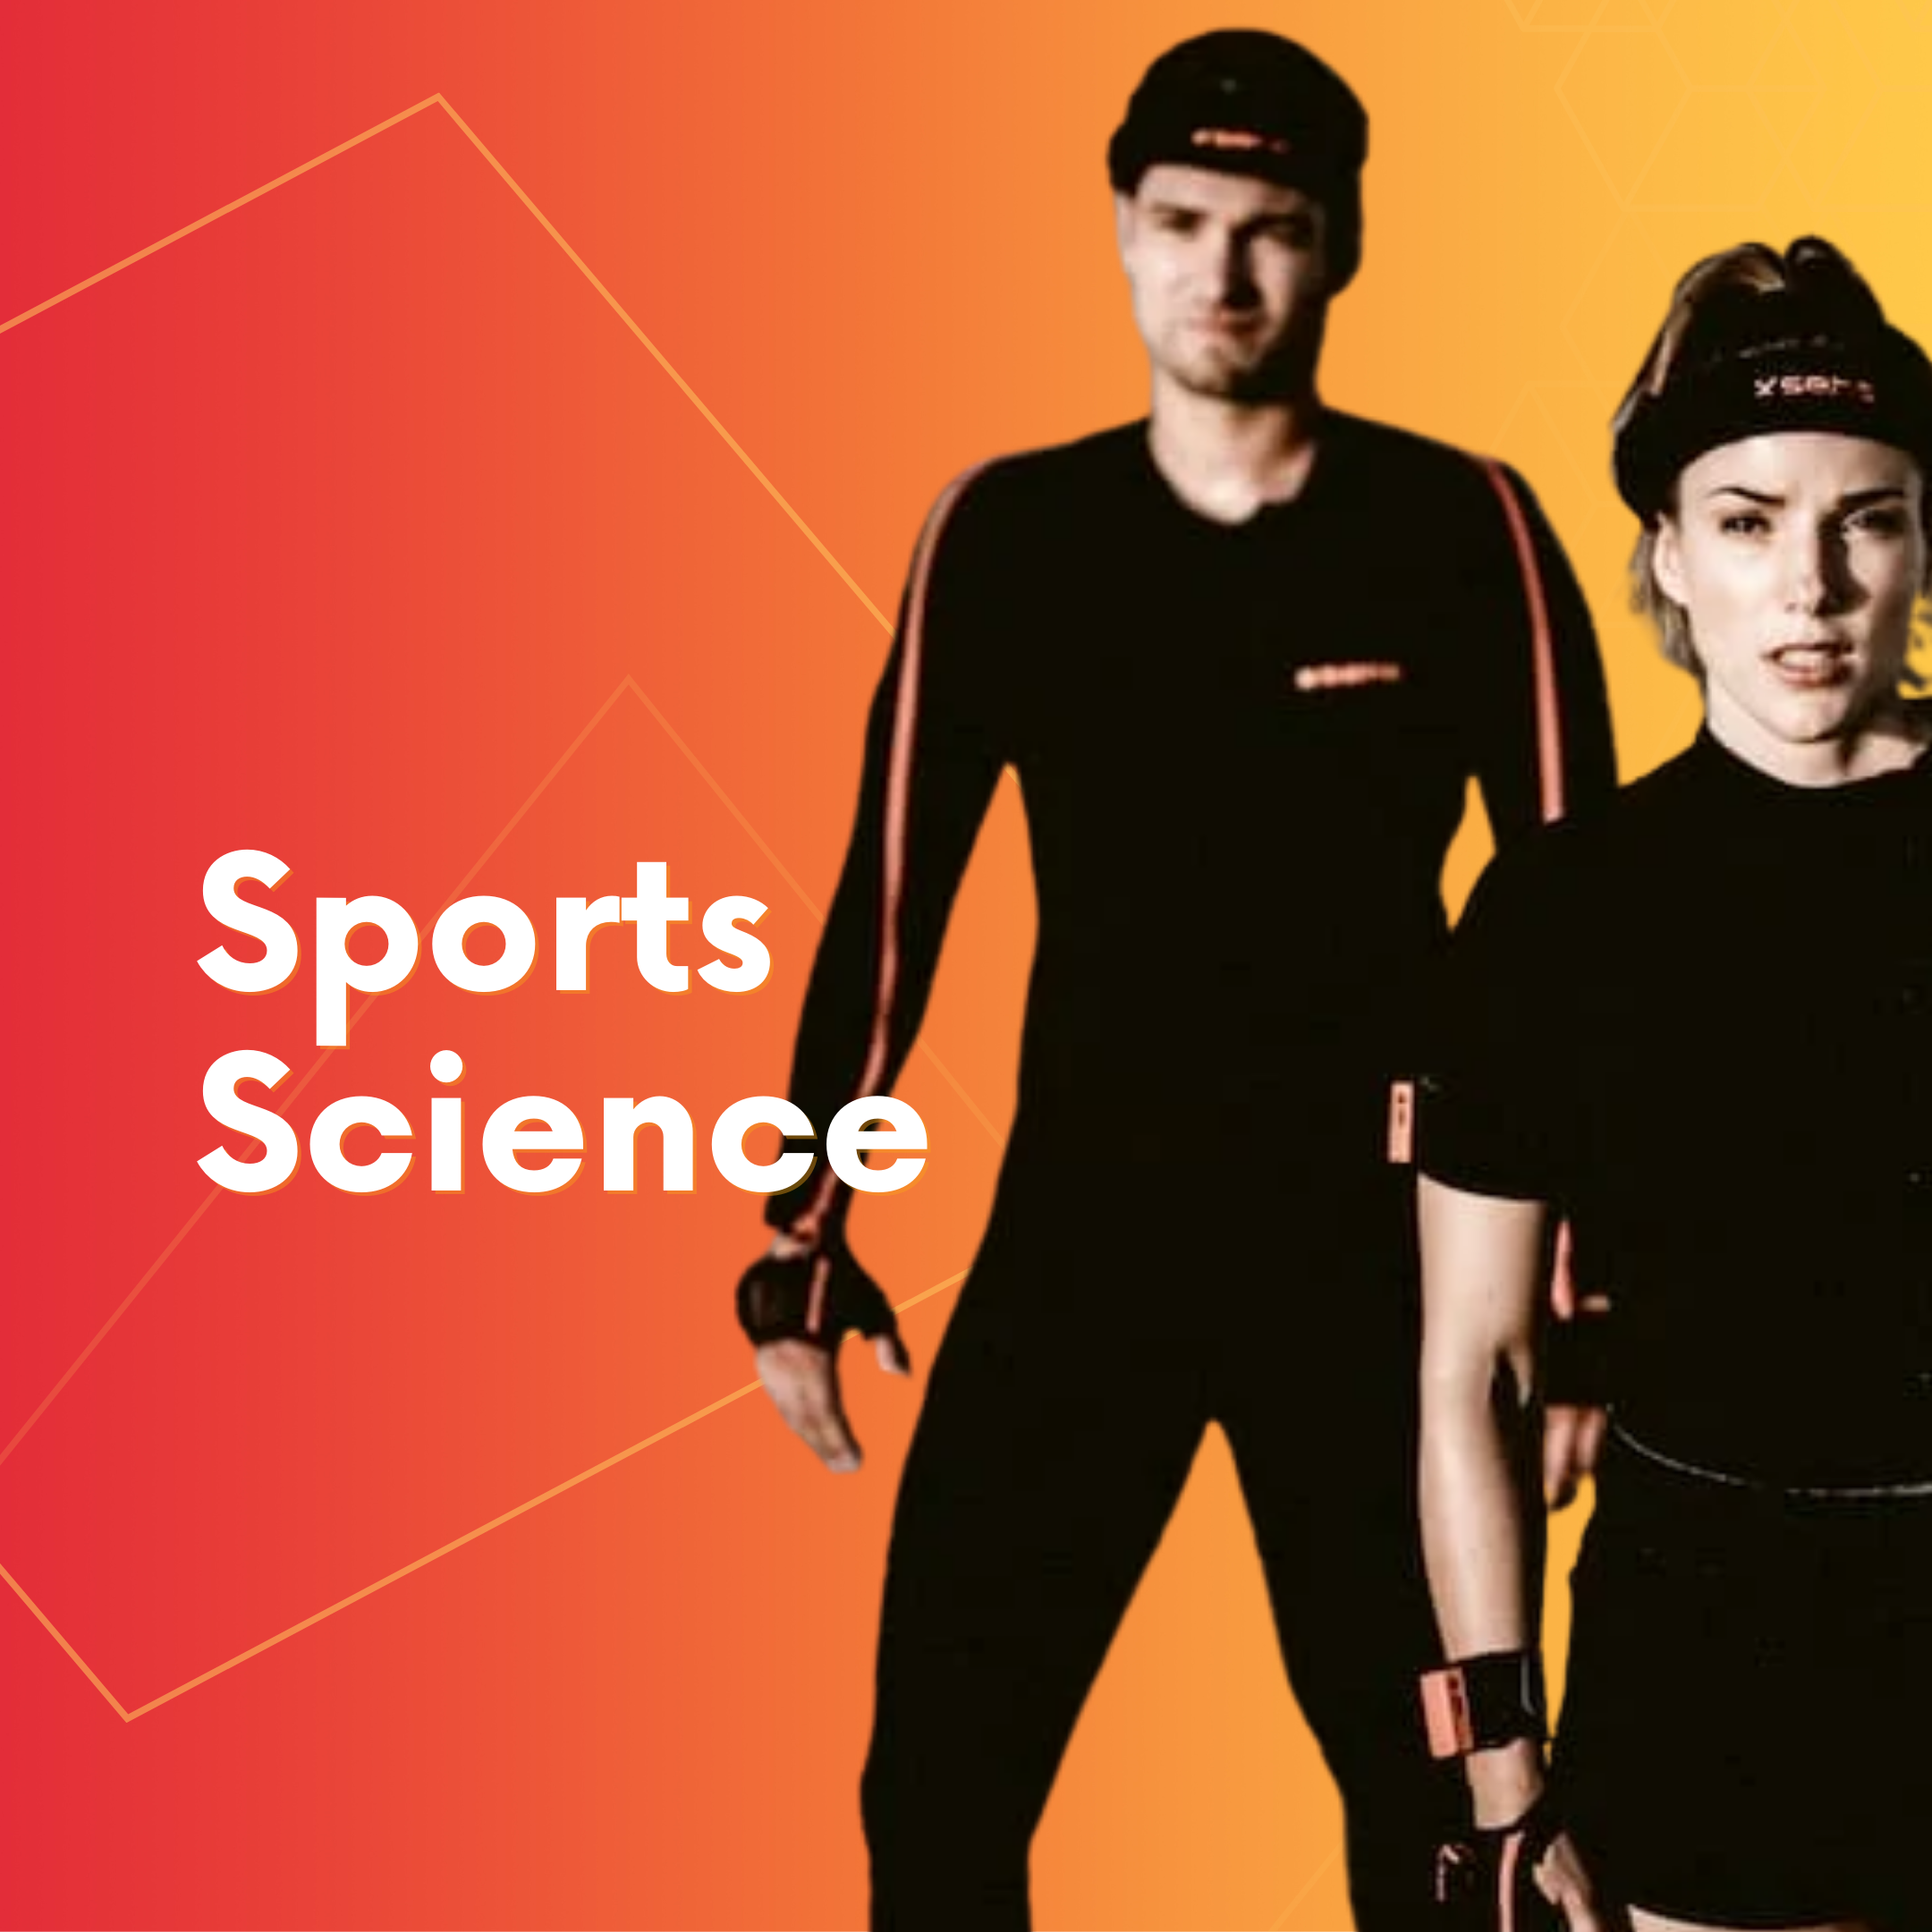 https://bmec.asia/wp-content/uploads/2021/07/Sports-Science.png